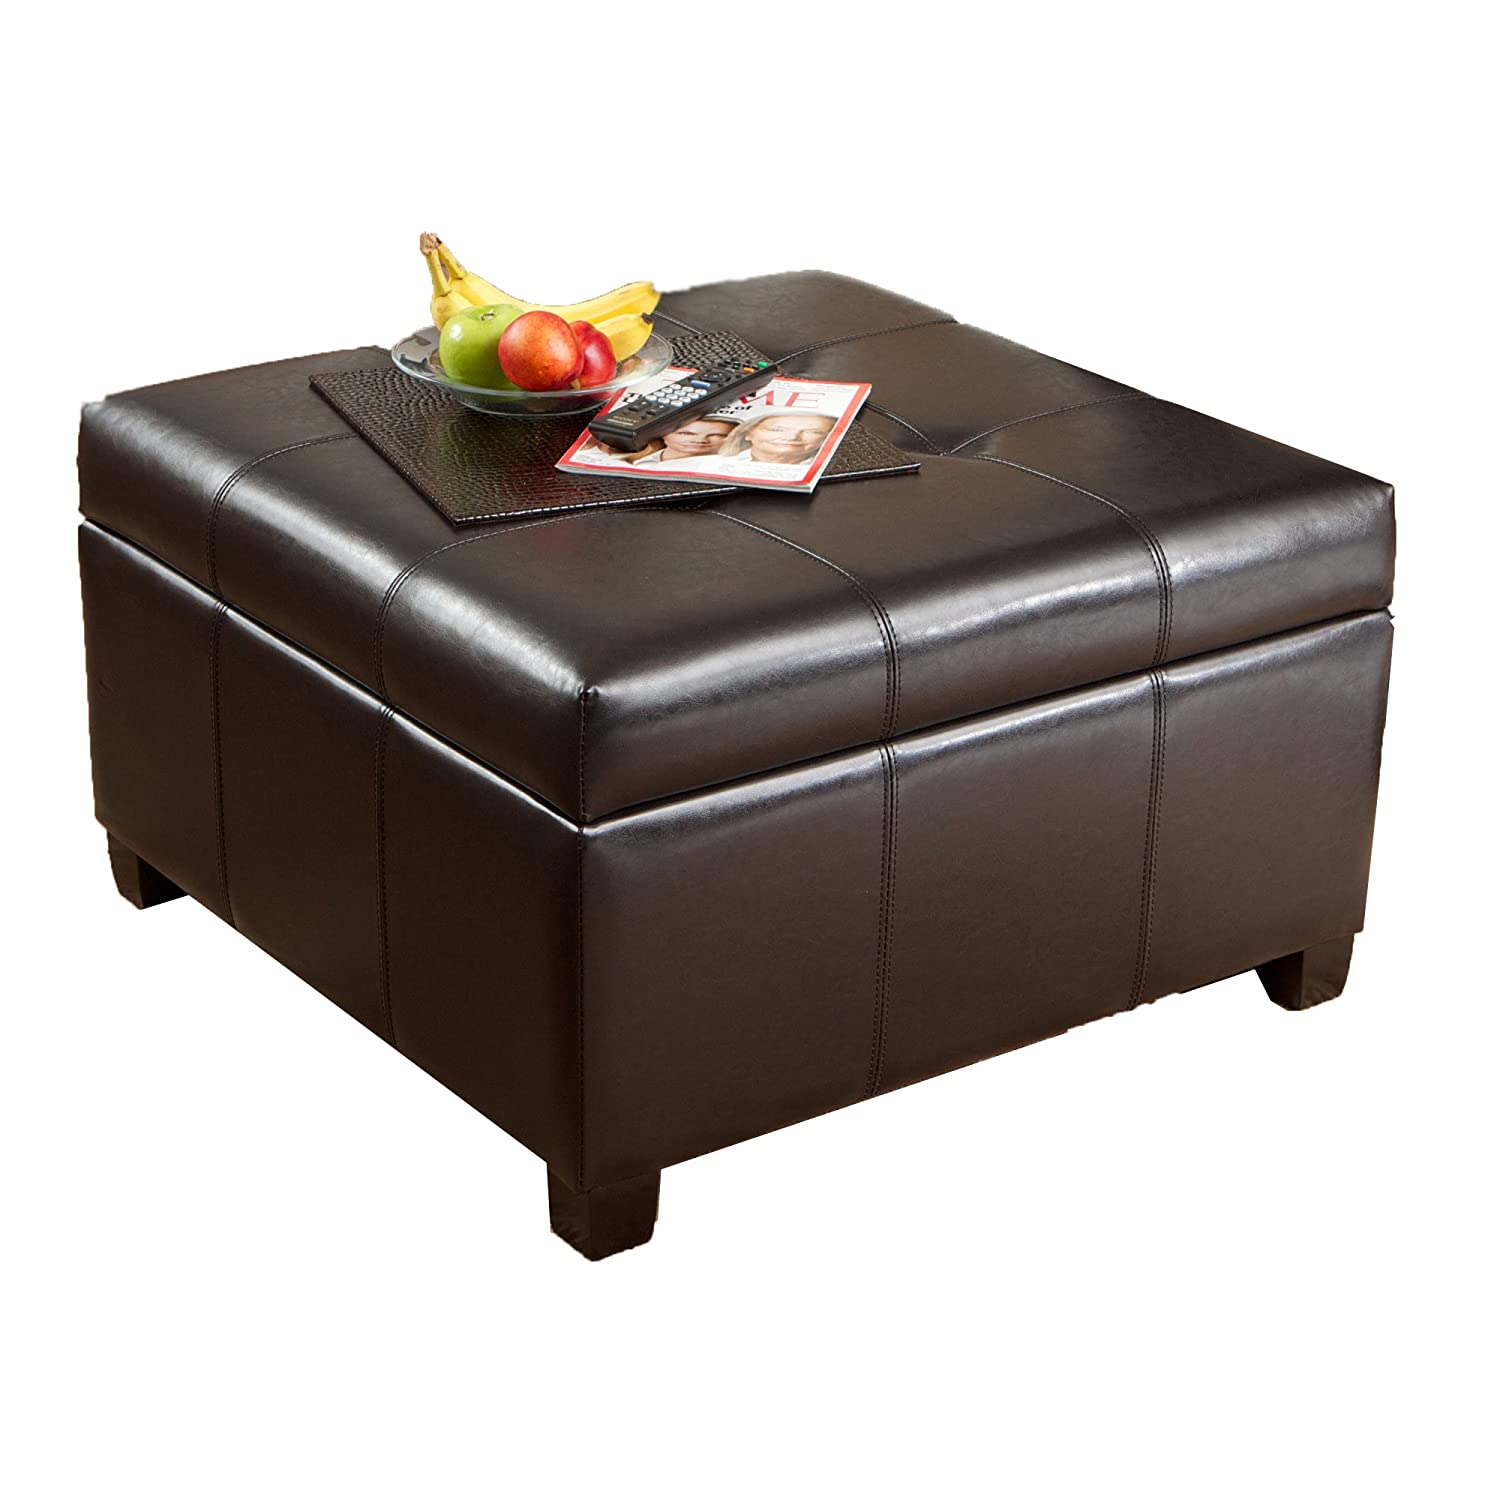 Super Best Selling Storage Ottoman Coffee Table Square Shaped Premium Bonded Leather In Espresso Brown Andrewgaddart Wooden Chair Designs For Living Room Andrewgaddartcom